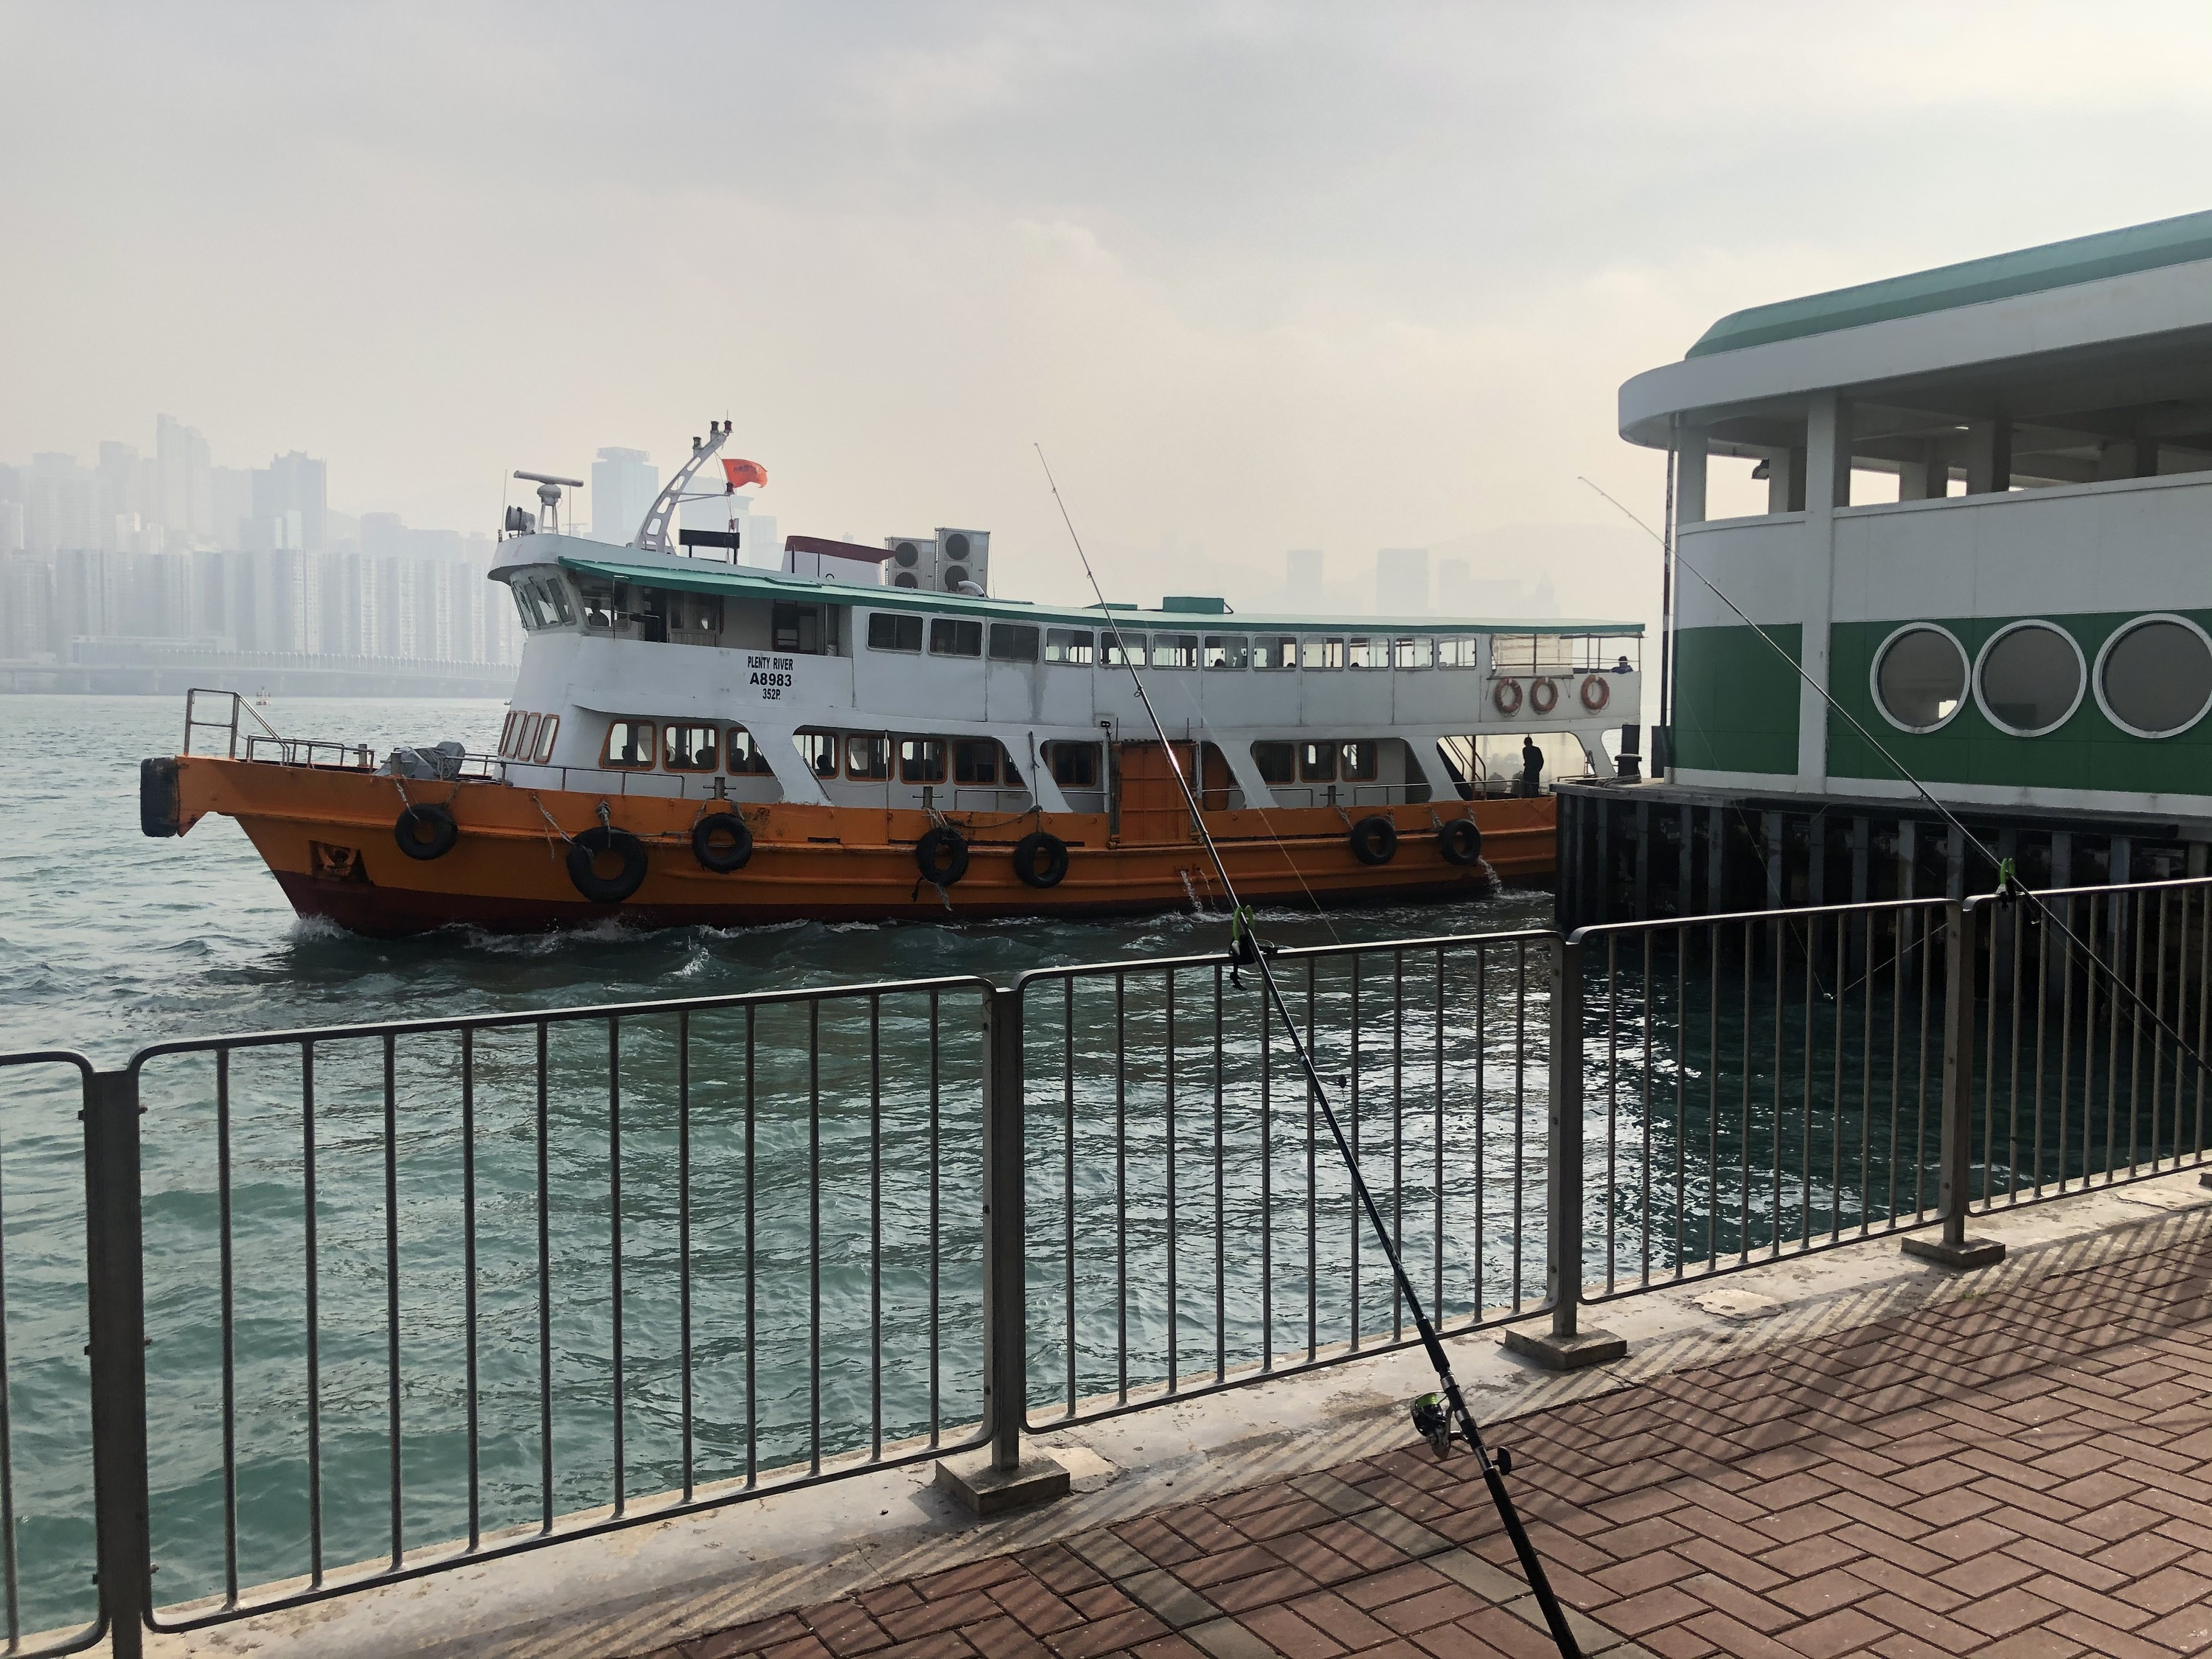 Hung Hom Ferry Pier_Anthony29-01-2020